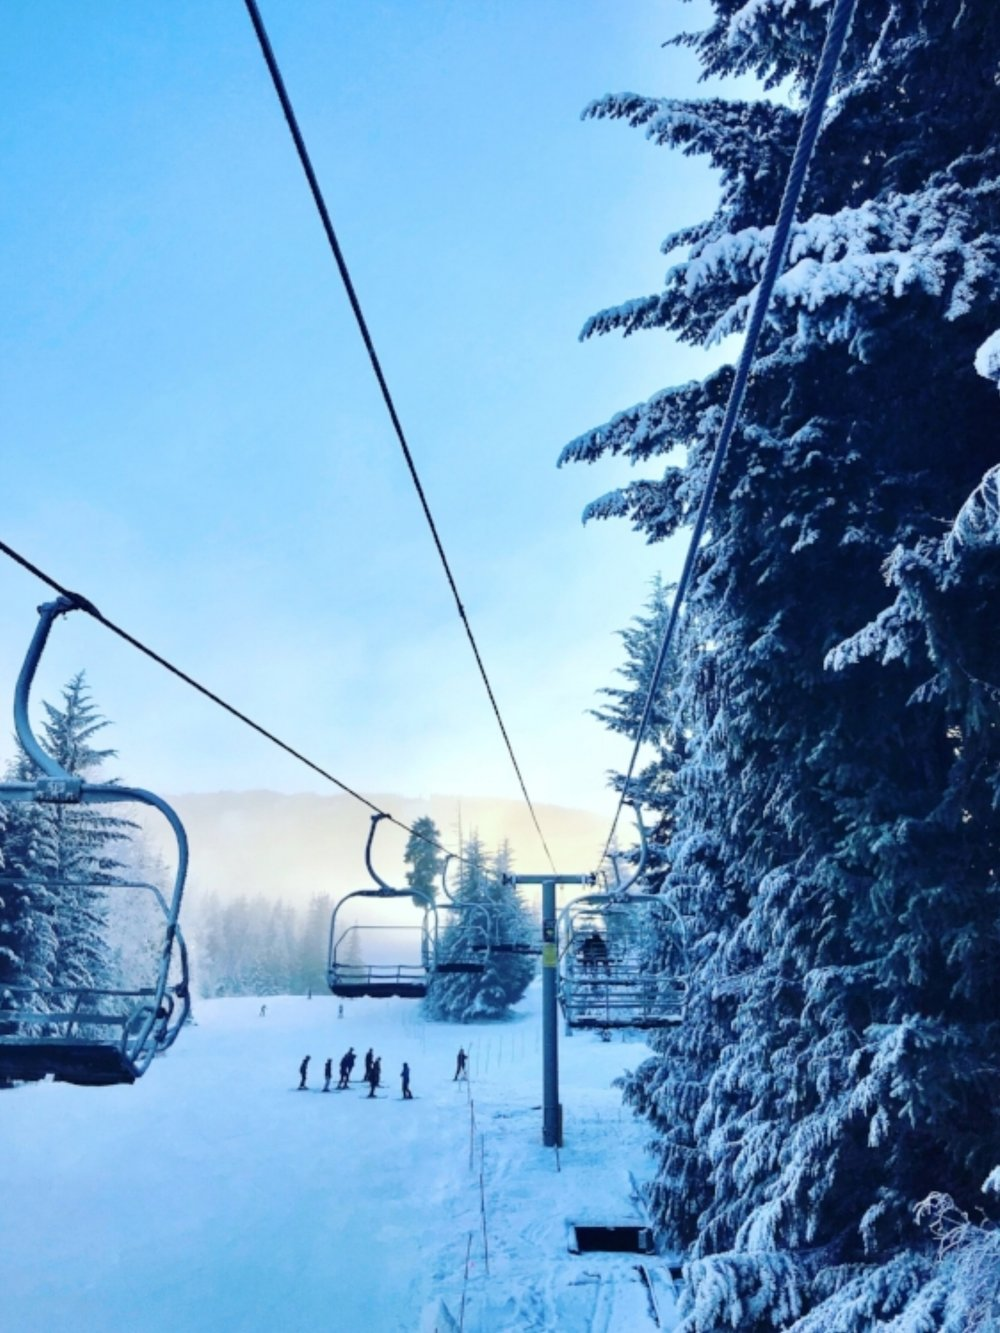 Your MAX4 lesson will get you up on the mountain to enjoy mornings like these!